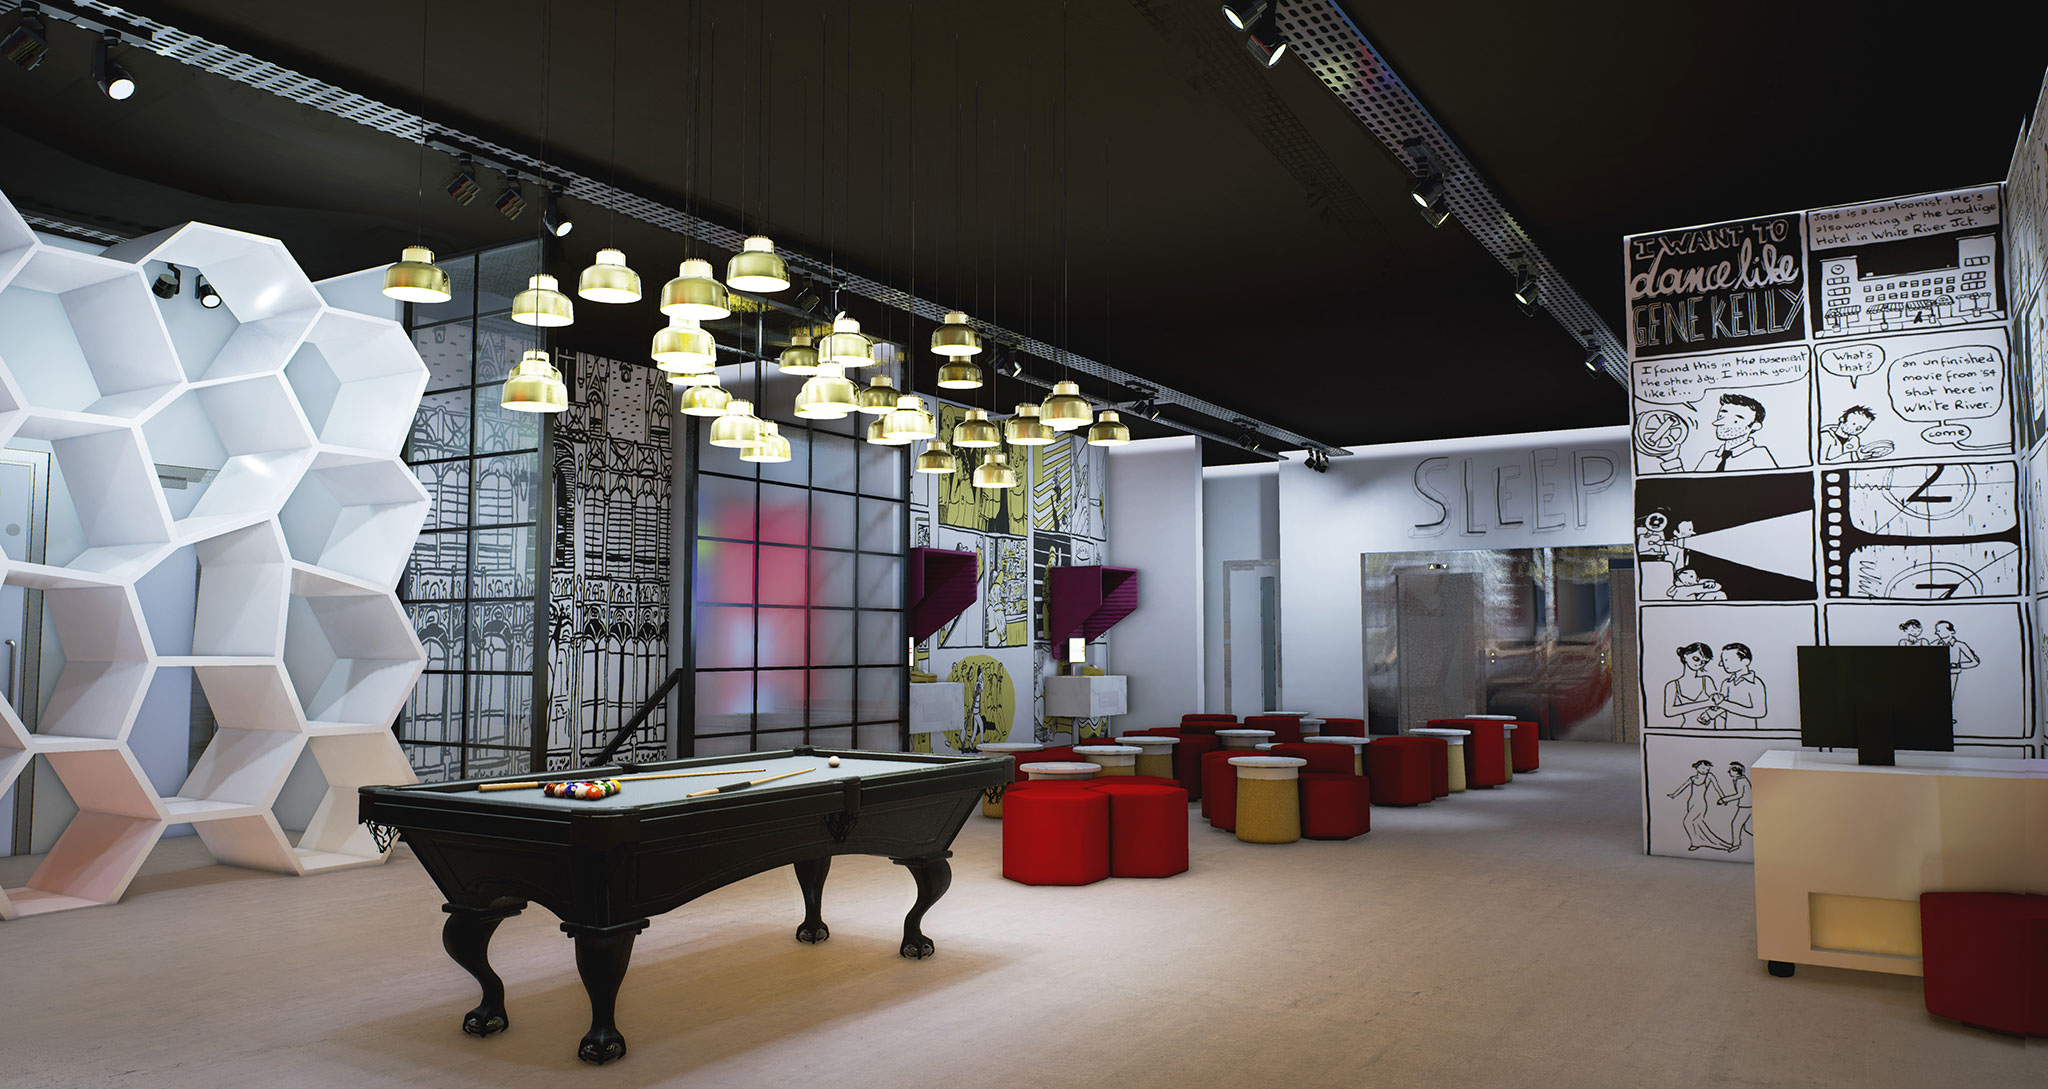 Radisson RED Brussels lobby using Unreal Engine